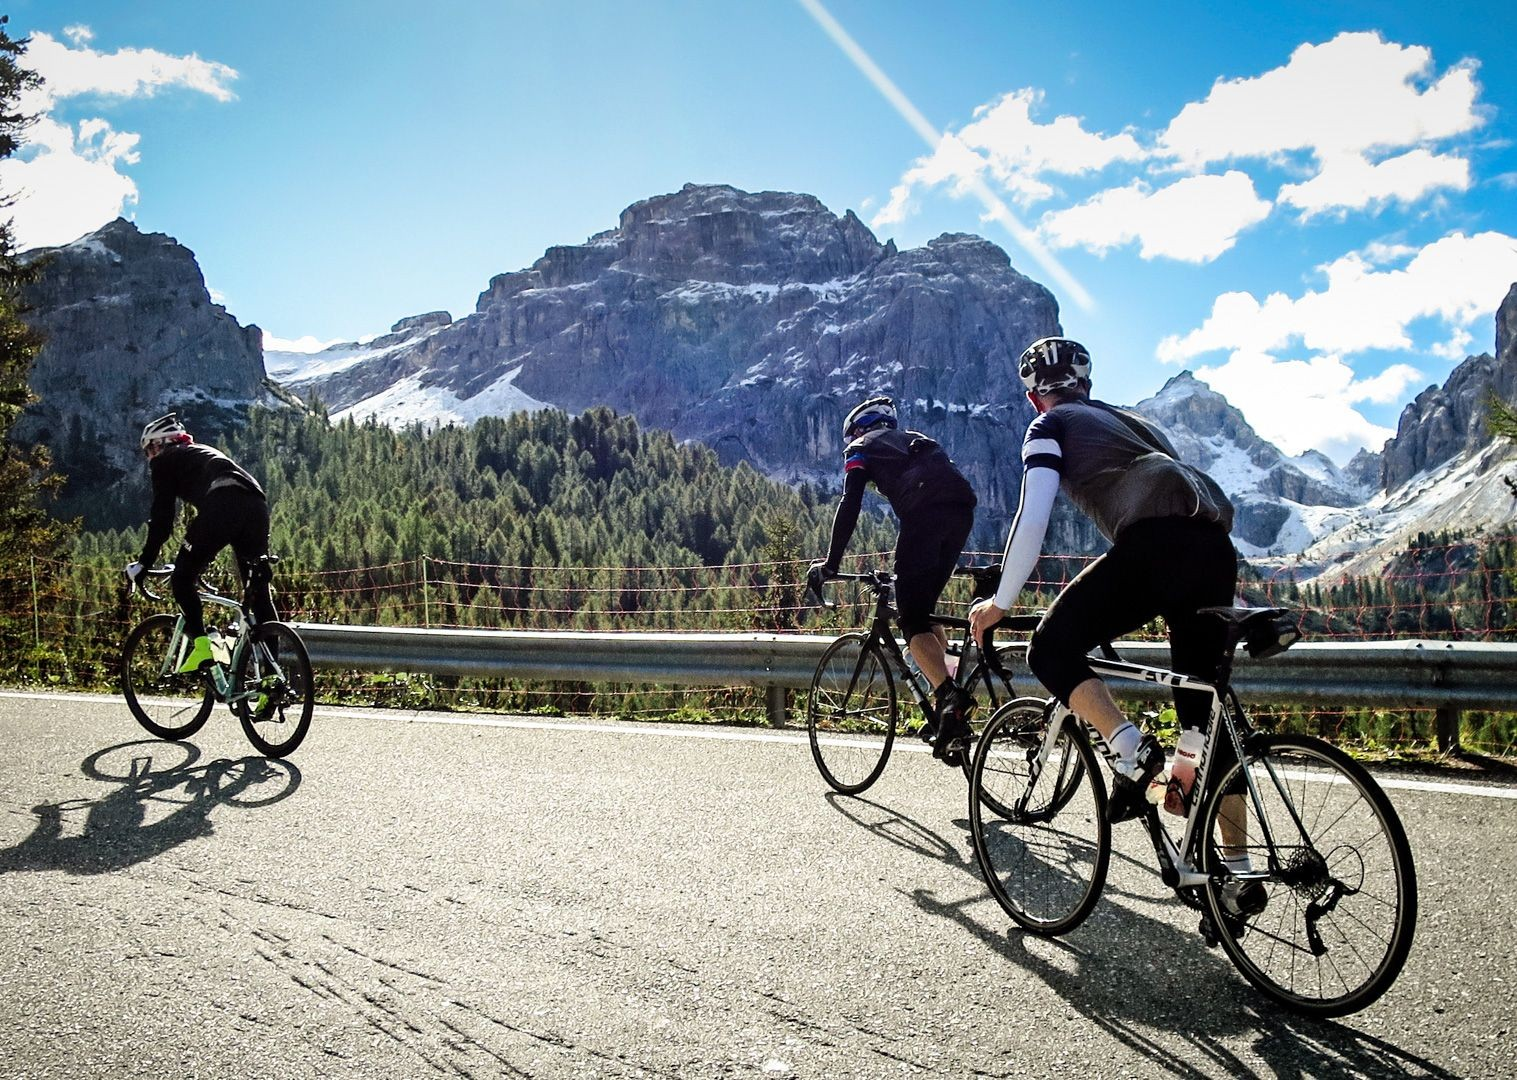 challenging-climbs-italian-dolomites-road-bike-skedaddle.jpg - Italy - Alps and Dolomites - Giants of the Giro - Guided Road Cycling Holiday - Italia Road Cycling